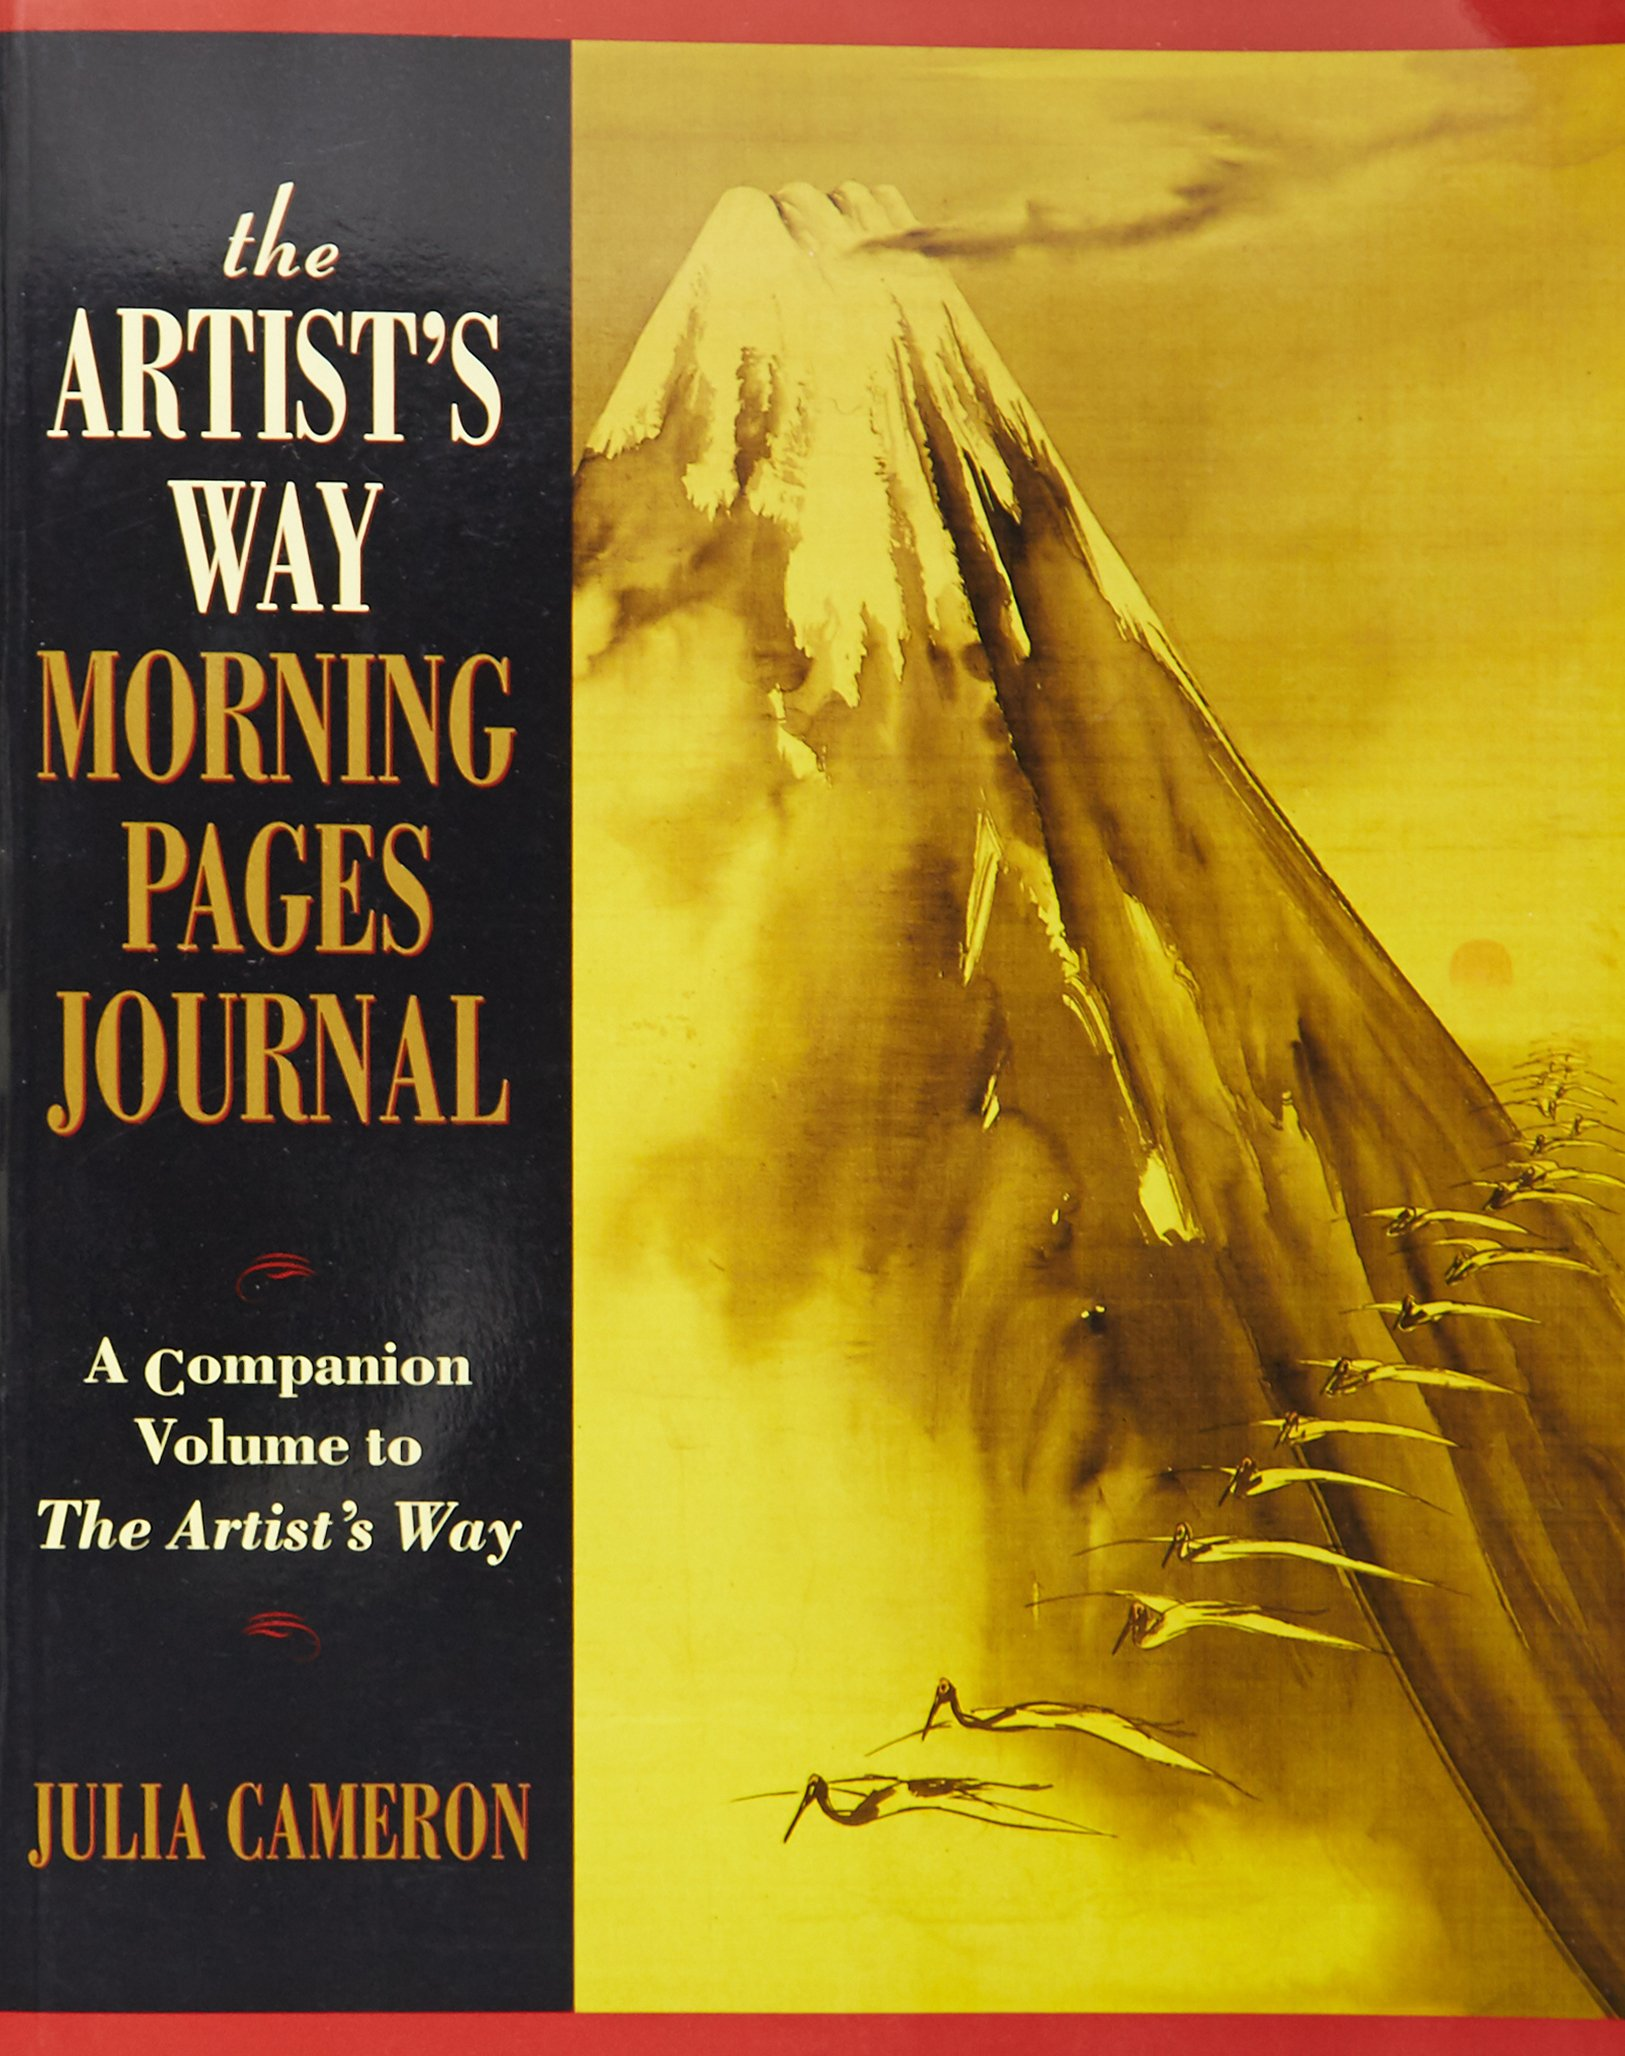 The Artist's Way Morning Pages Journal: Apanion Volume To The Artist's  Way: Julia Cameron: 9780874778861: Amazon: Books